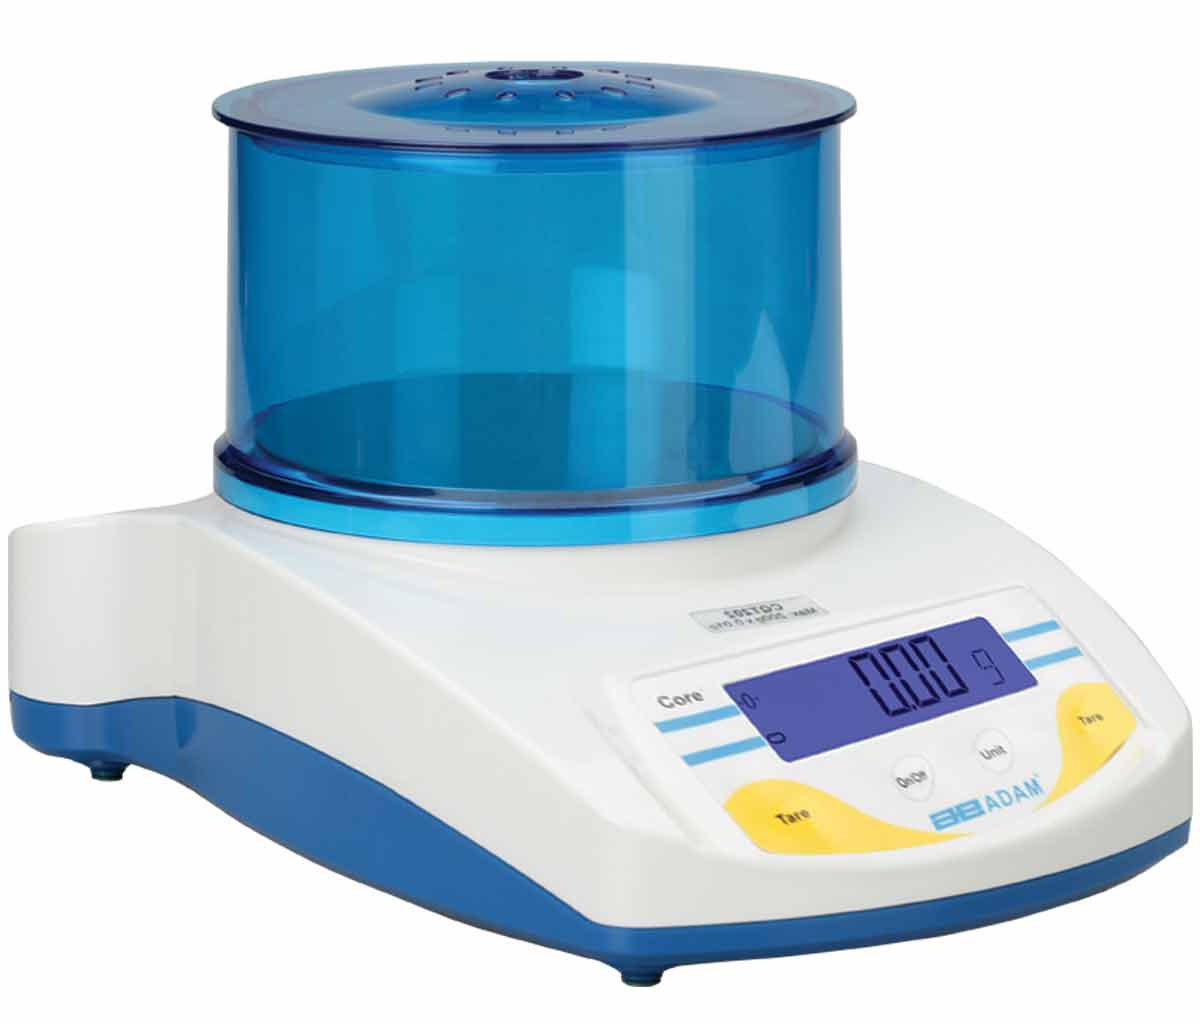 The LabMart, Highest Quality Lab Equipment at Great Prices